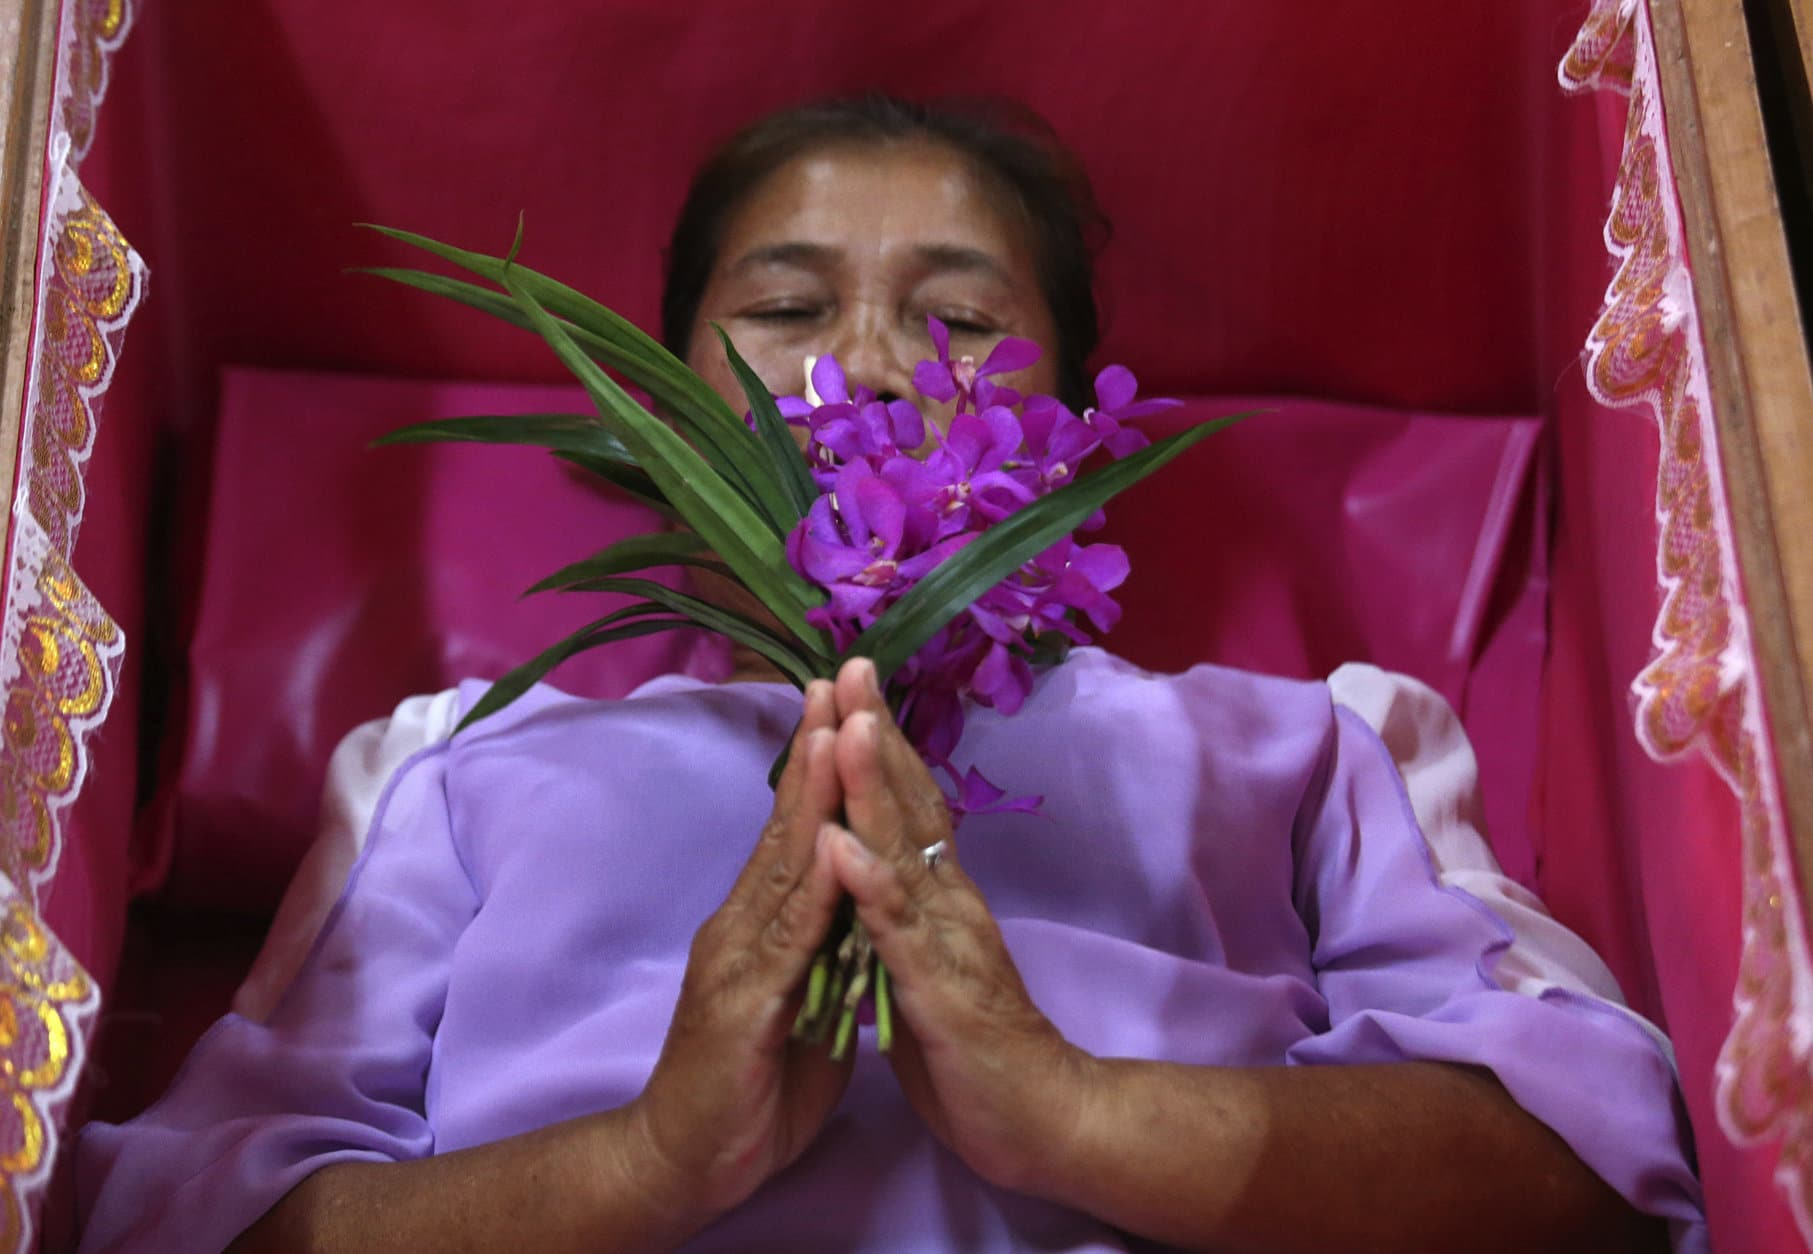 A worshipper prays as she takes her turn lying in a coffin at the Takien temple in suburban Bangkok, Thailand Monday, Dec. 31, 2018. Worshippers believe that the coffin ceremony – symbolizing death and rebirth – helps them rid themselves of bad luck and are born again for a fresh start in the new year. (AP Photo/Sakchai lalit)